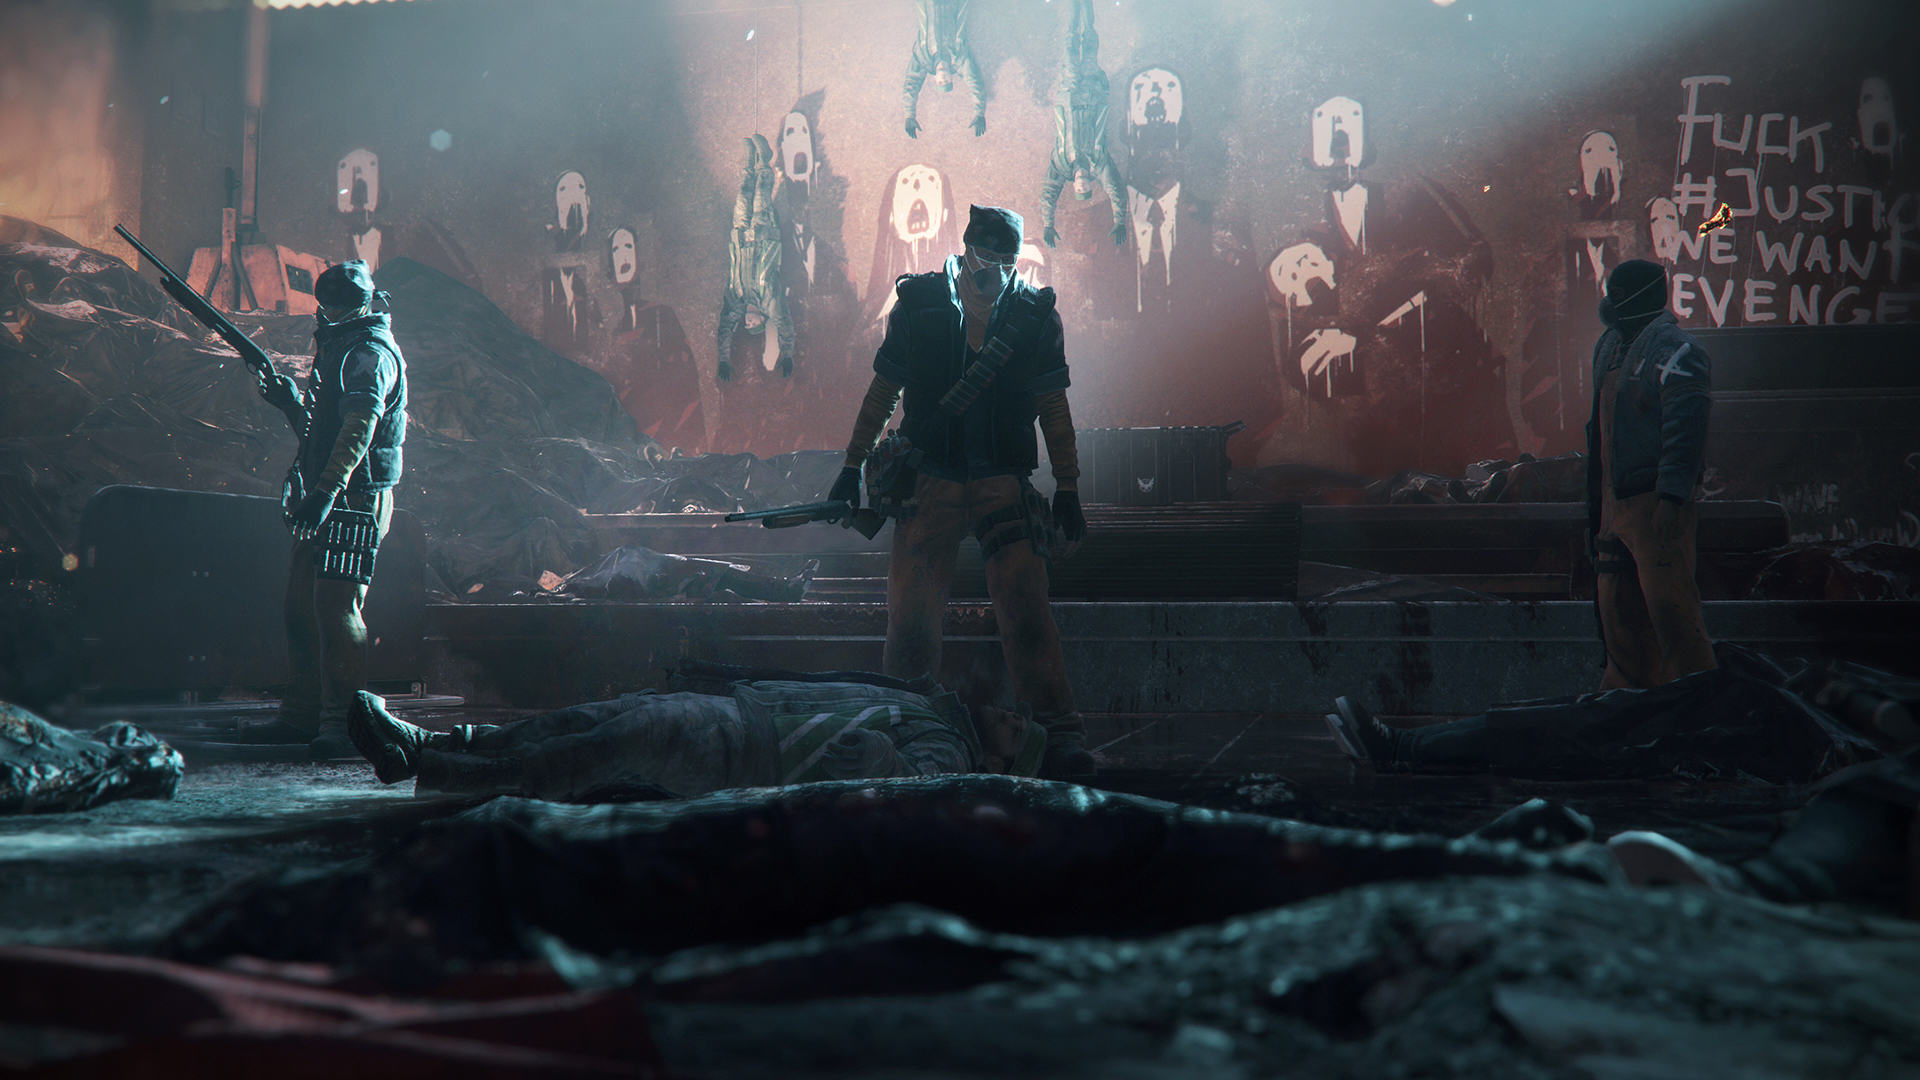 We Had An Exclusive Look At The Division Ahead Of Release Day TCTD 1601 web screenshot rikers